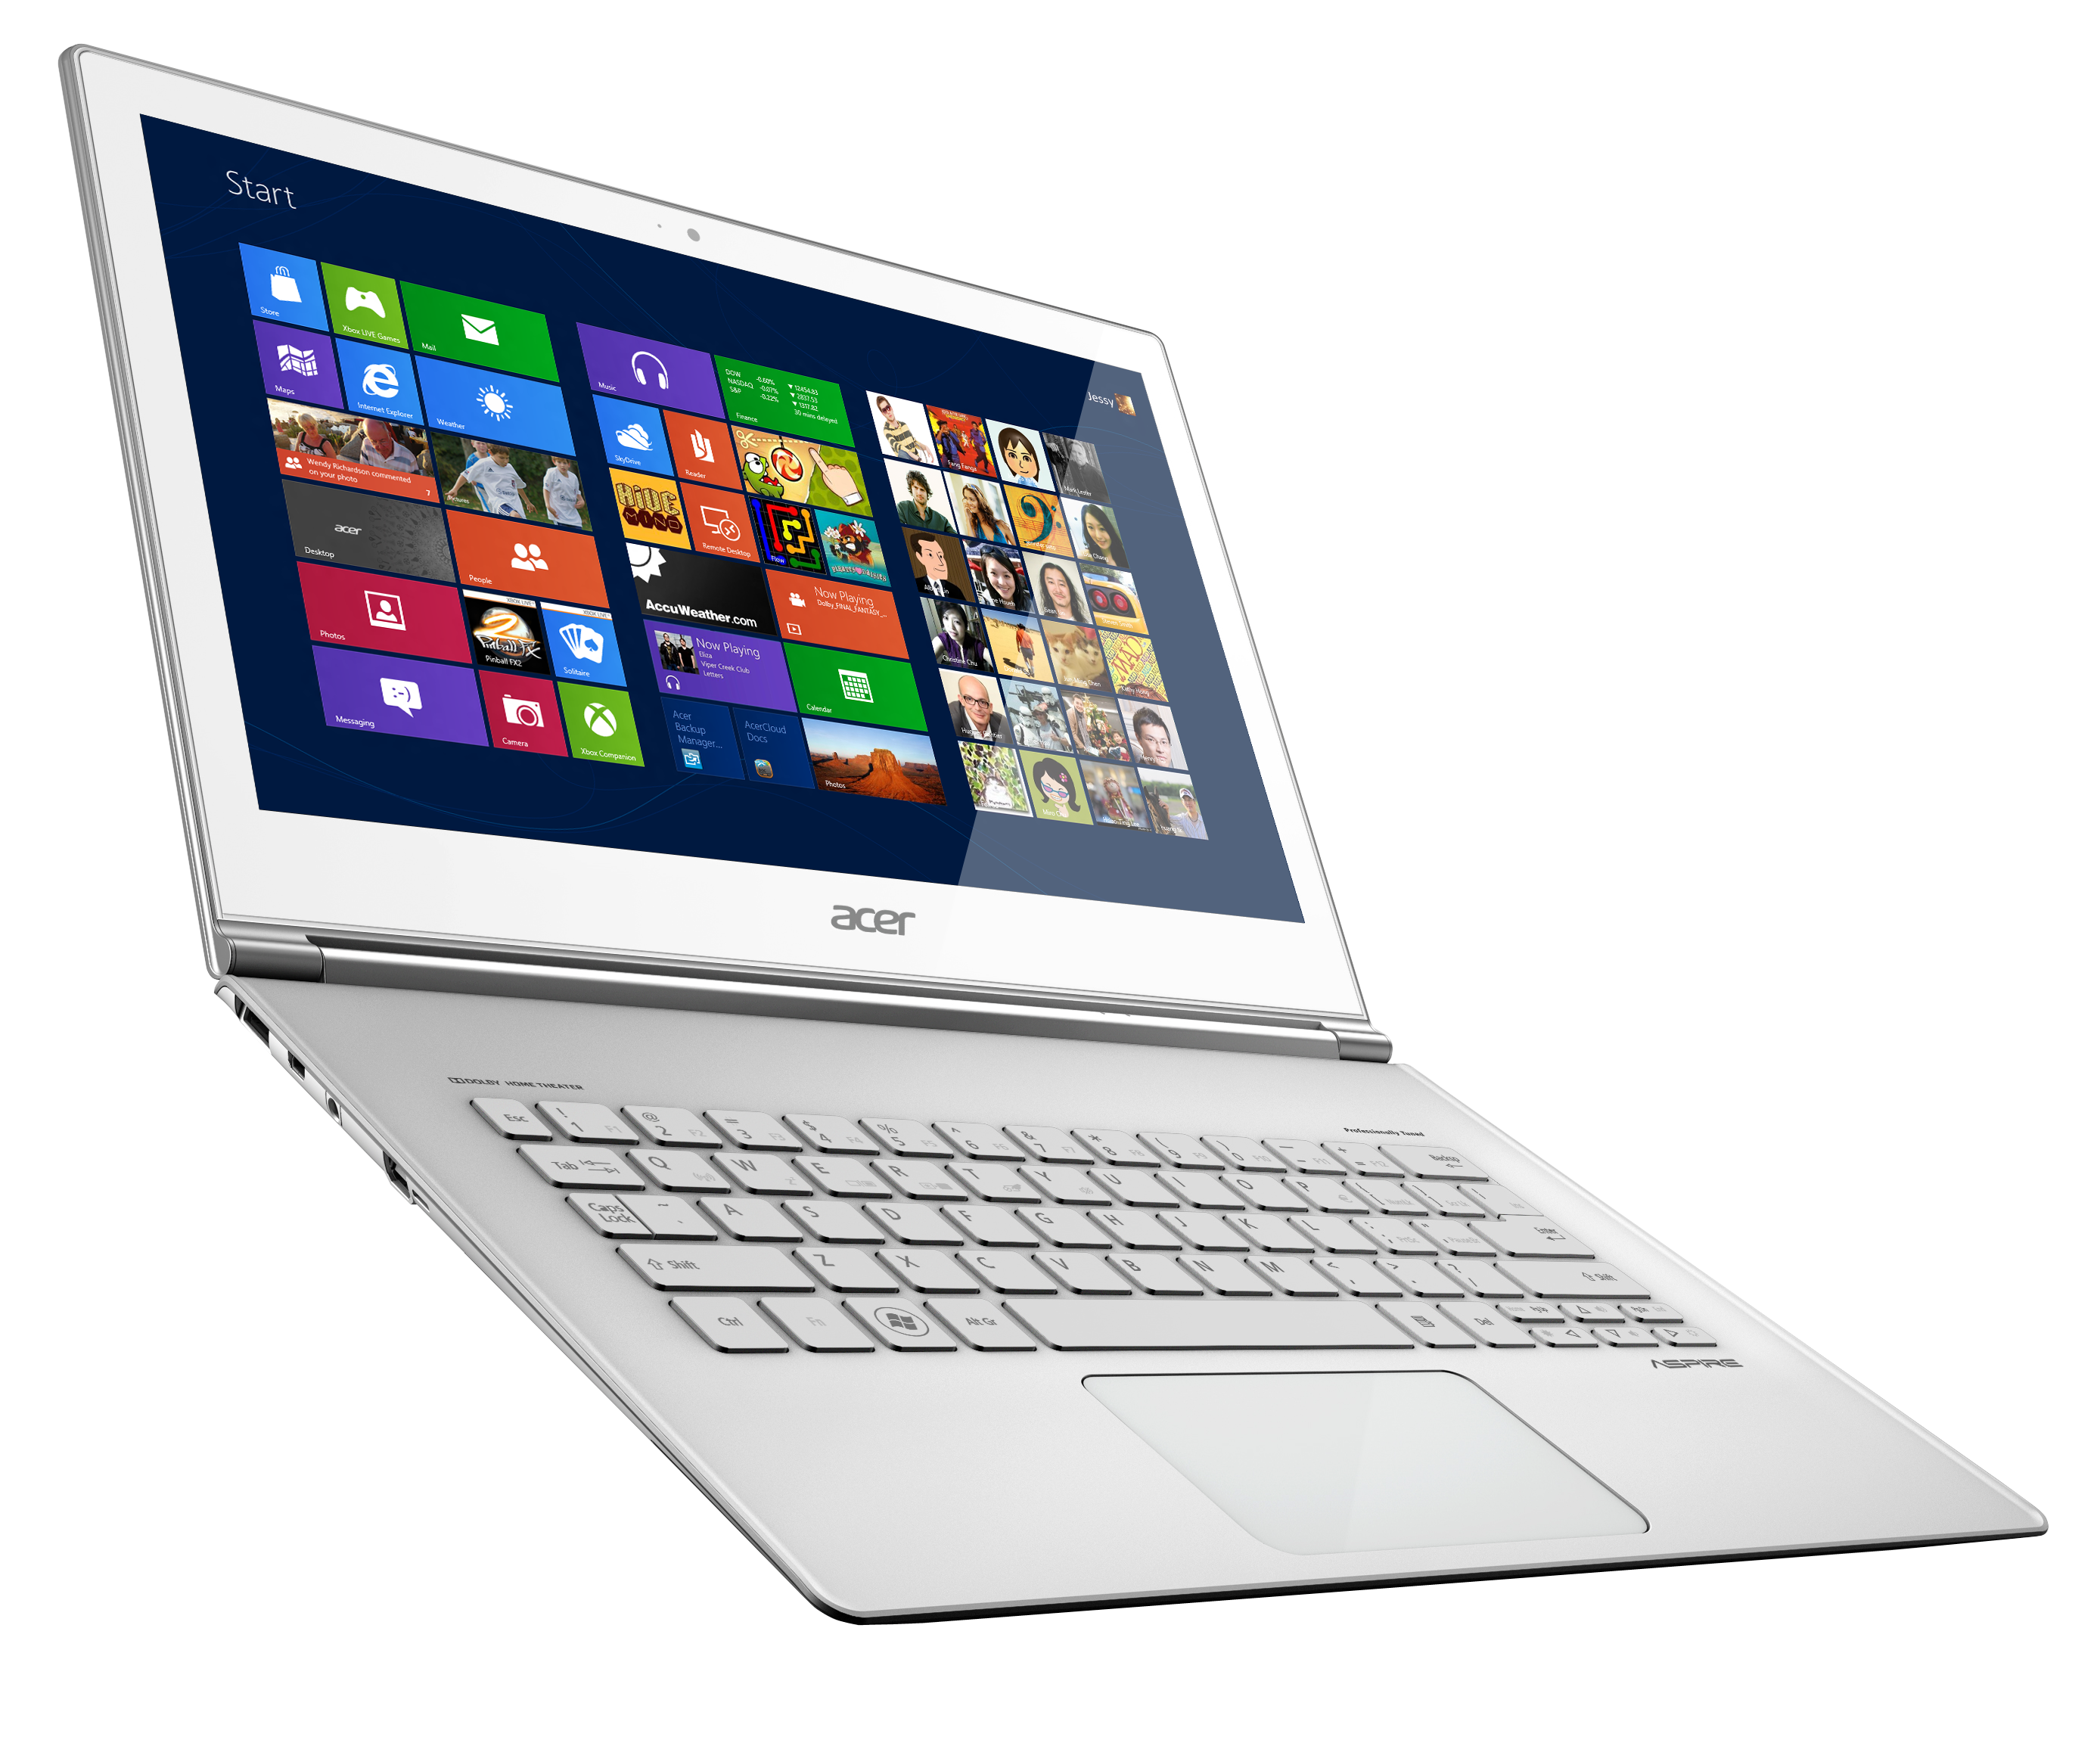 Acer Aspire S7 Touchscreen Ultrabook Release Specs and ...